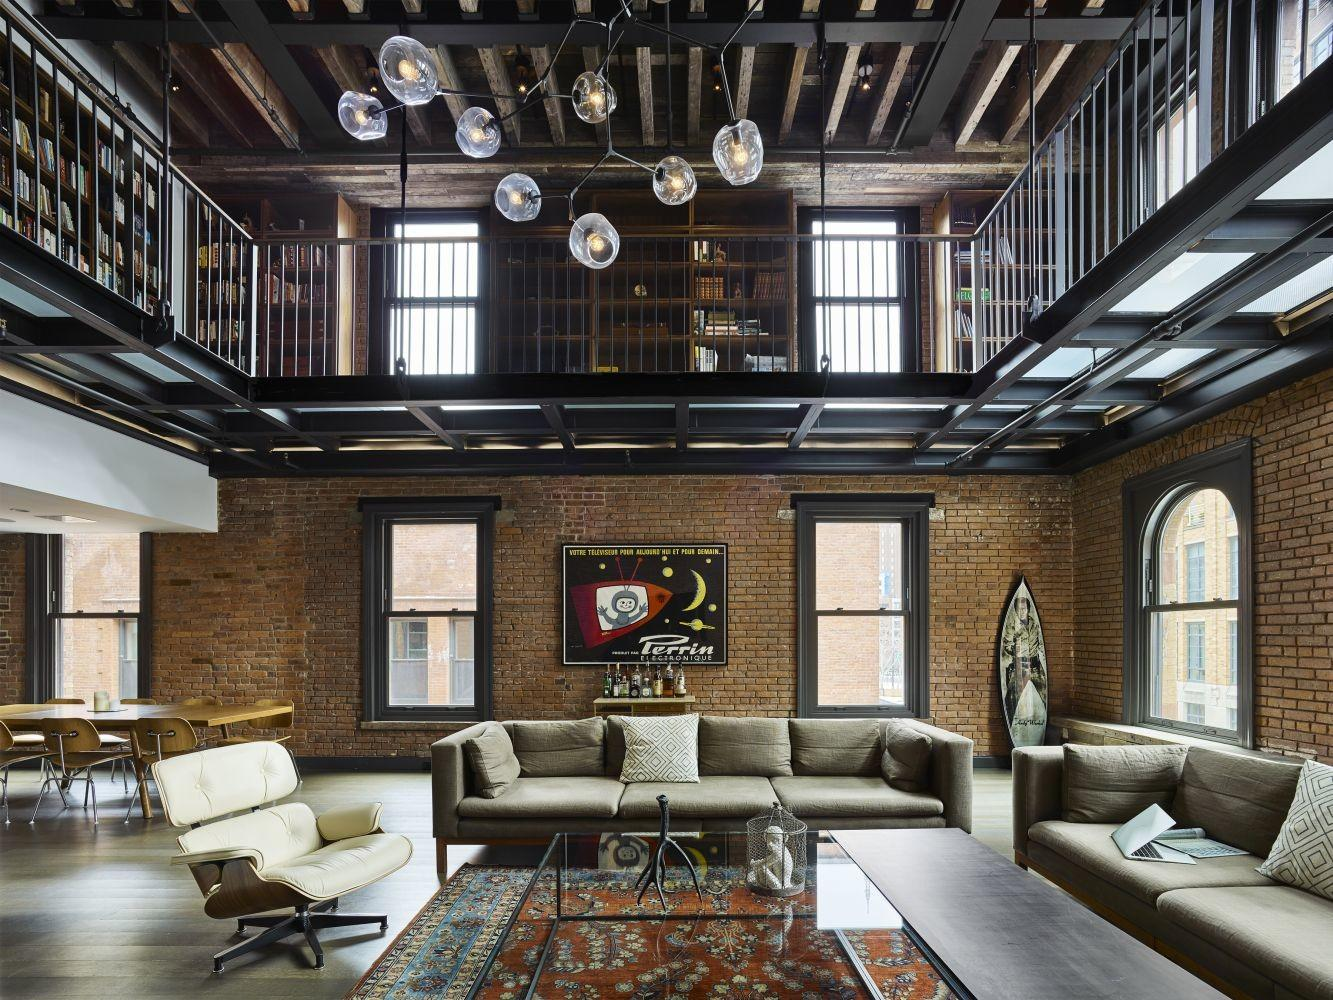 Tribeca Citizen Loft Peeping 000 Square Foot Triplex